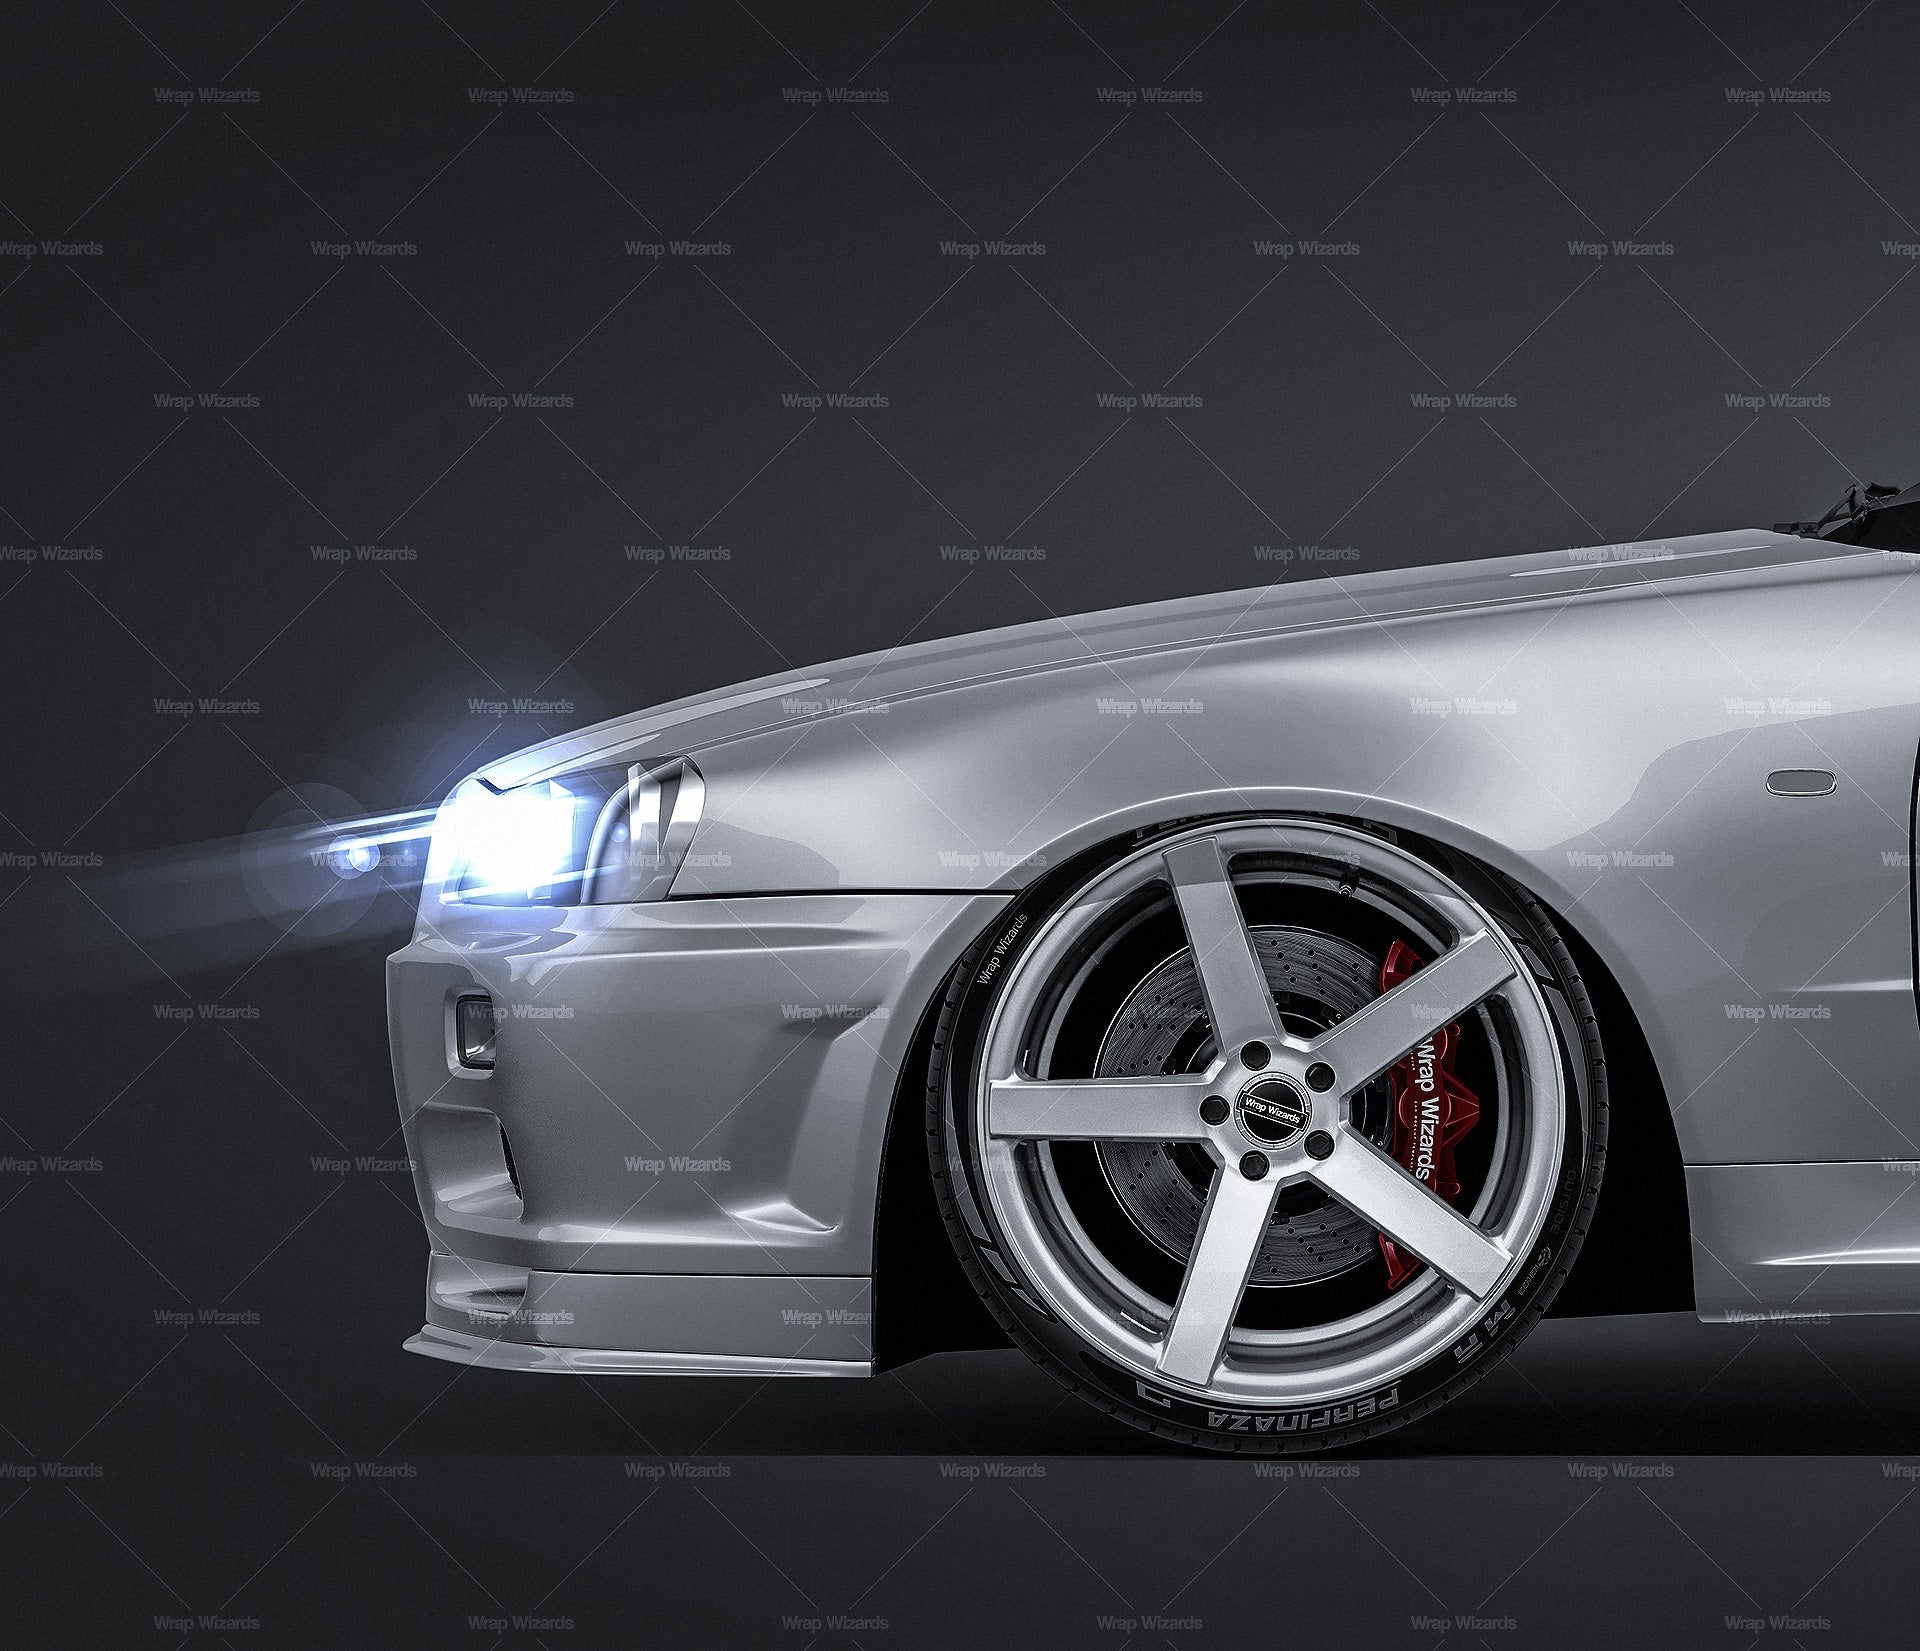 Nissan Skyline R34 GT-R coupe 1999 all sides Car Mockup Template.psd